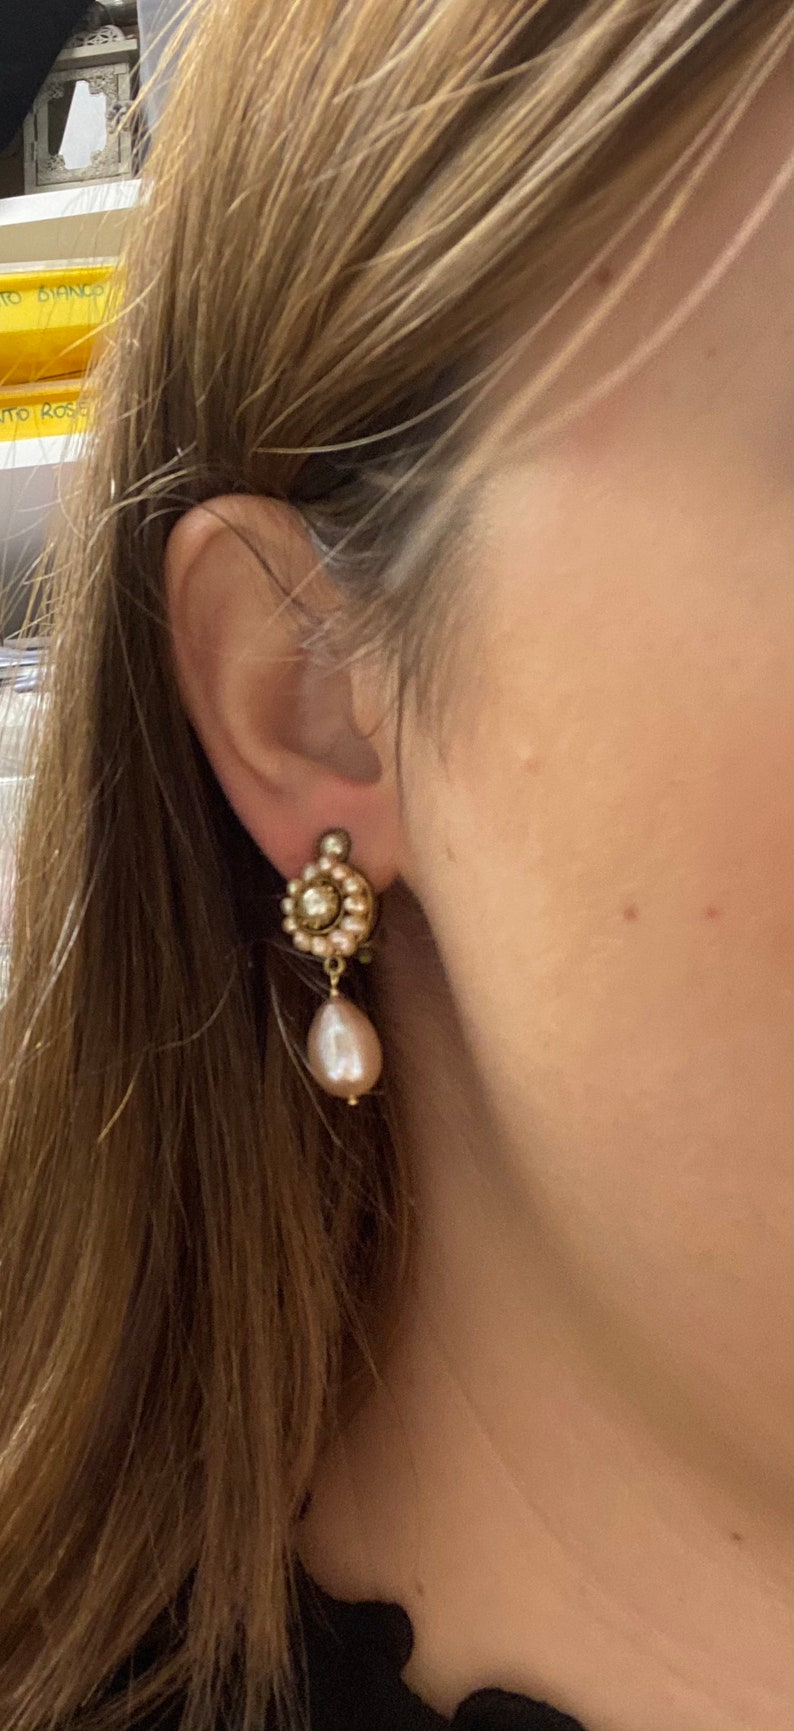 Flower lobe earrings with clips micro pearls and drops of pink pearls